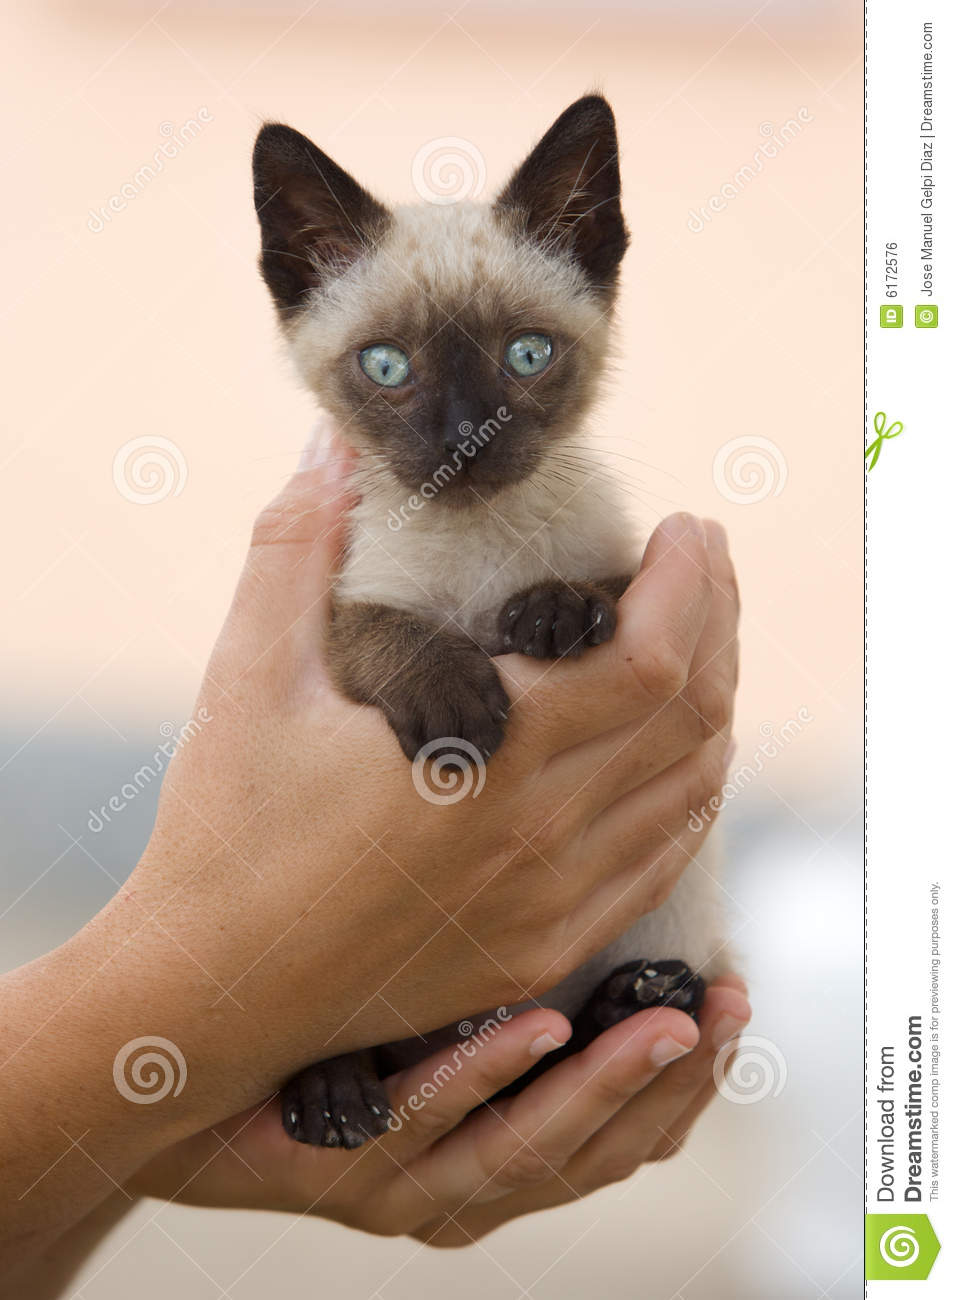 how to train a siamese cat